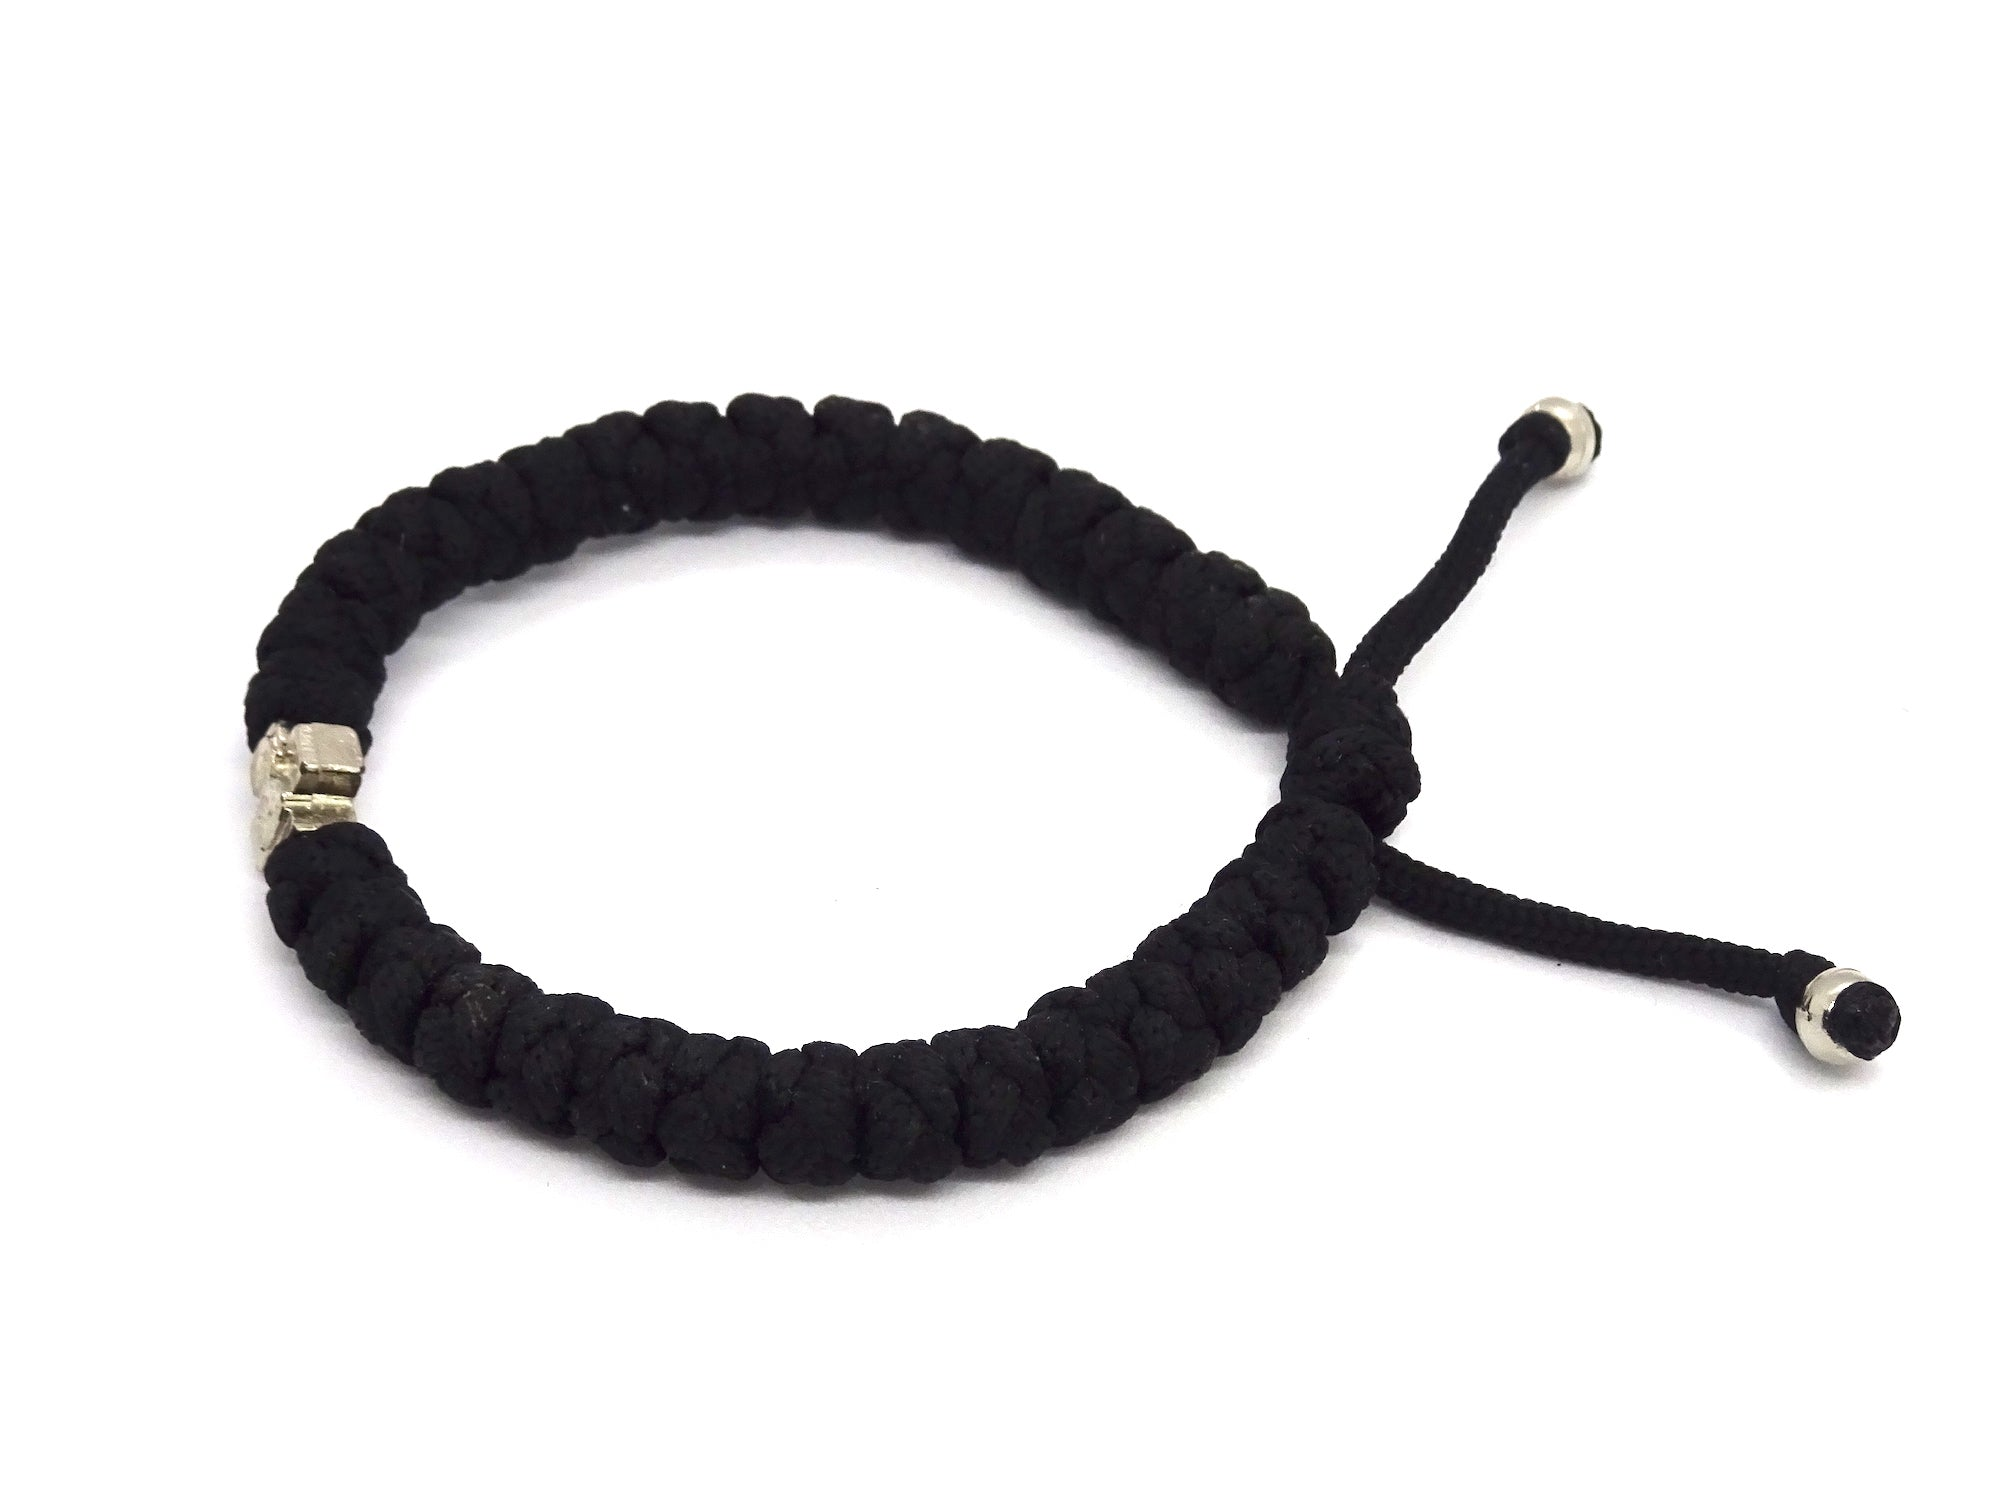 Adjustable Orthodox Black Prayer Rope with 33 Knots